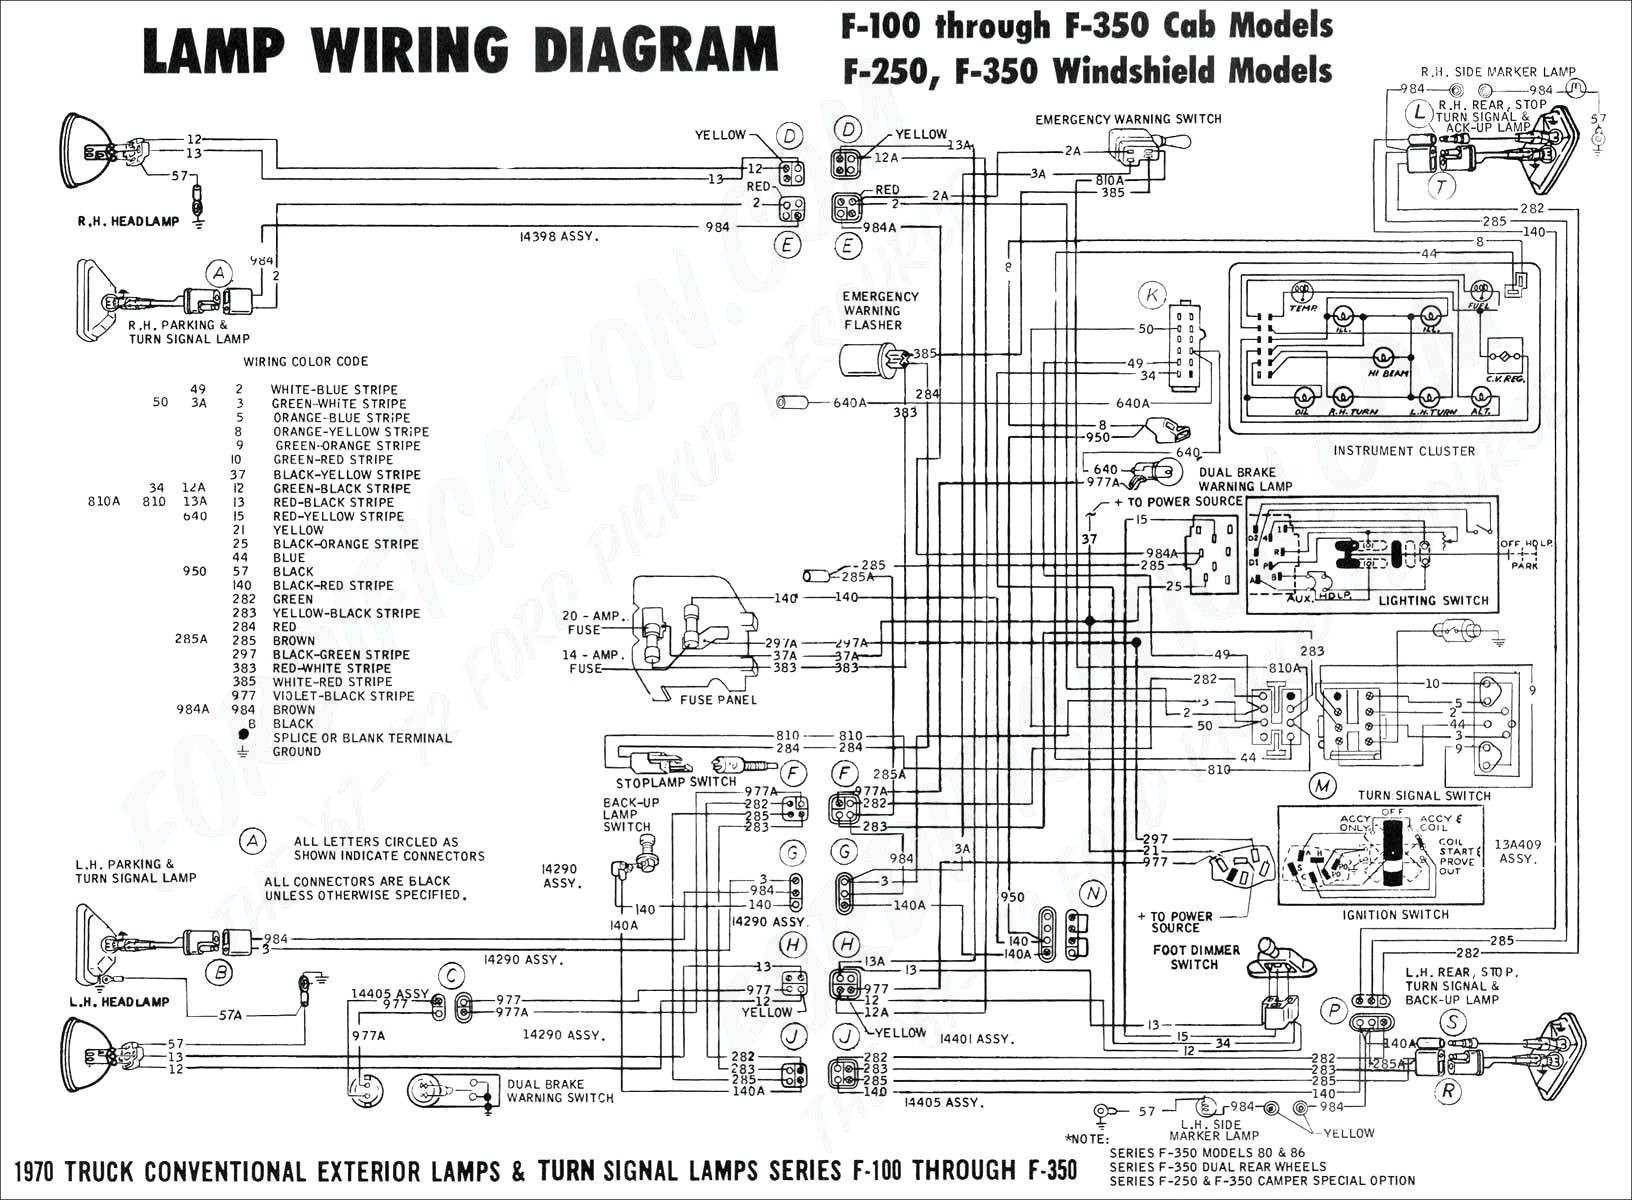 1998 monte carlo wiring schematic wiring diagram value 2000 Monte Carlo SS